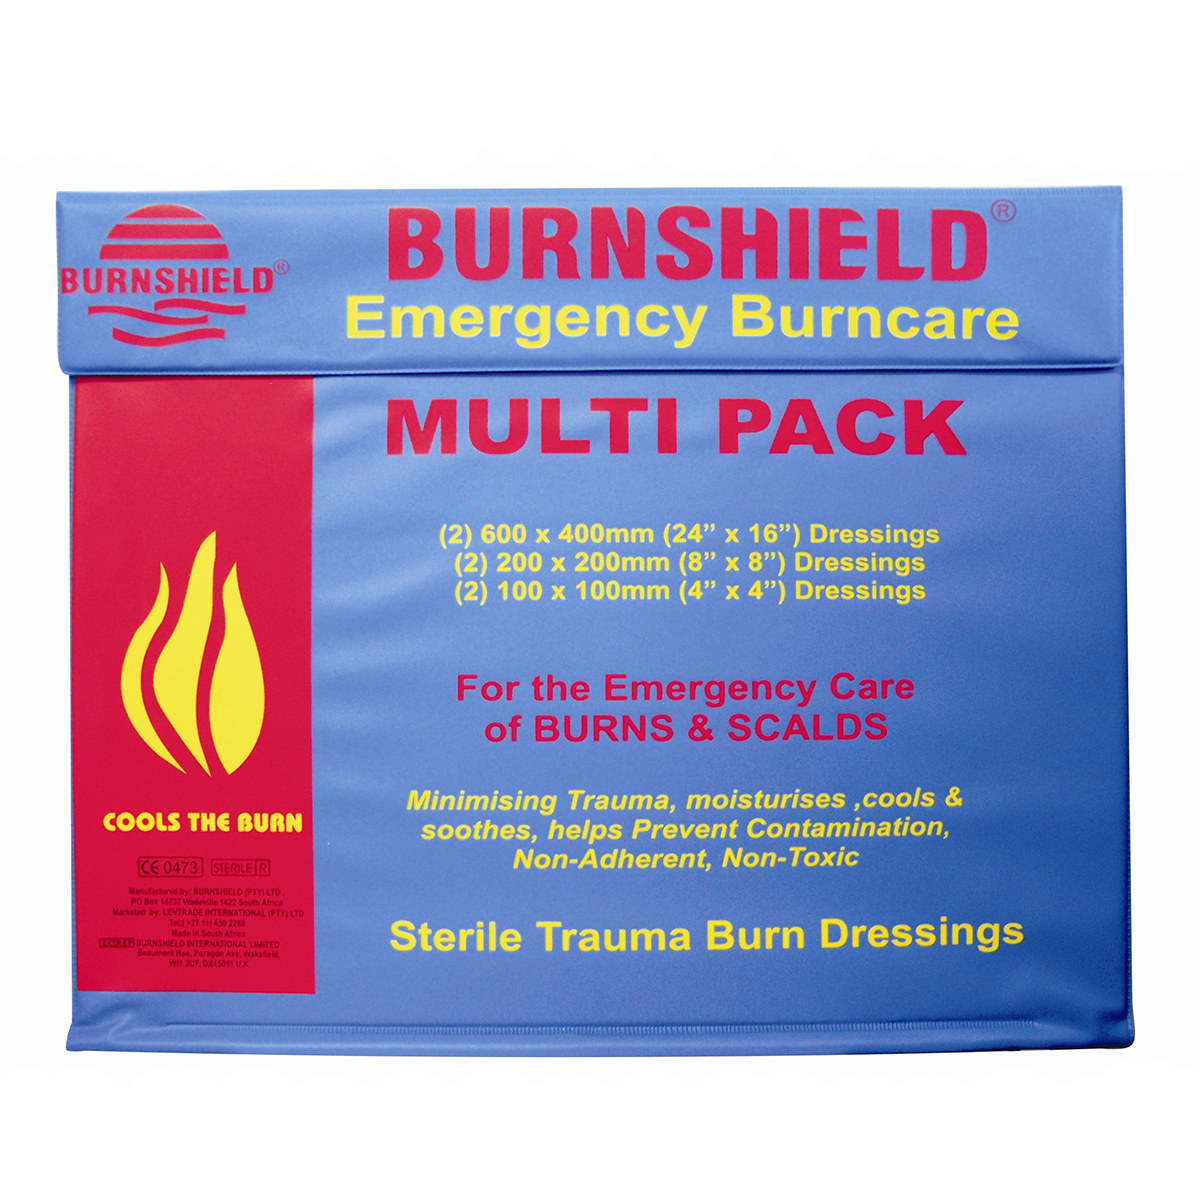 Burnshield® Emergency Burncare Dressings Multi-Pack